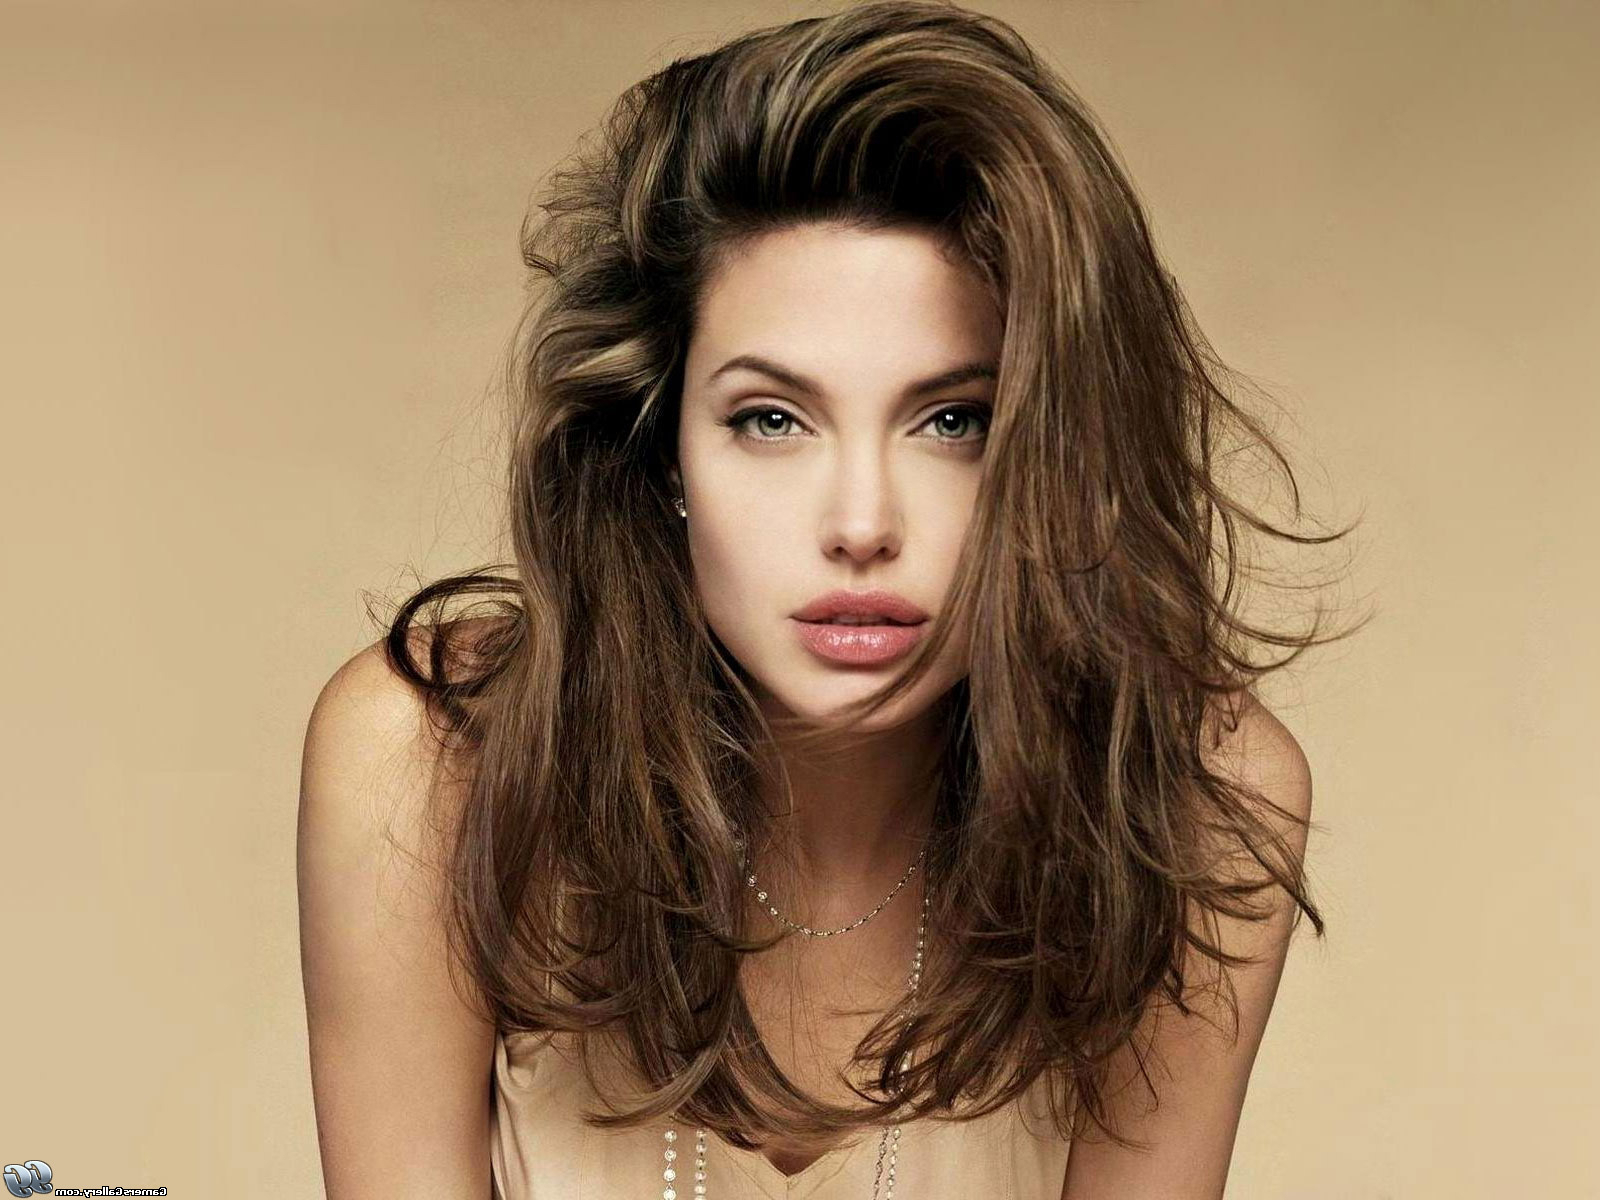 Pictures Of Photos – Short Hairstyles Help Angelina Jolie ]:=  Intended For Angelina Jolie Short Hairstyles (View 18 of 25)